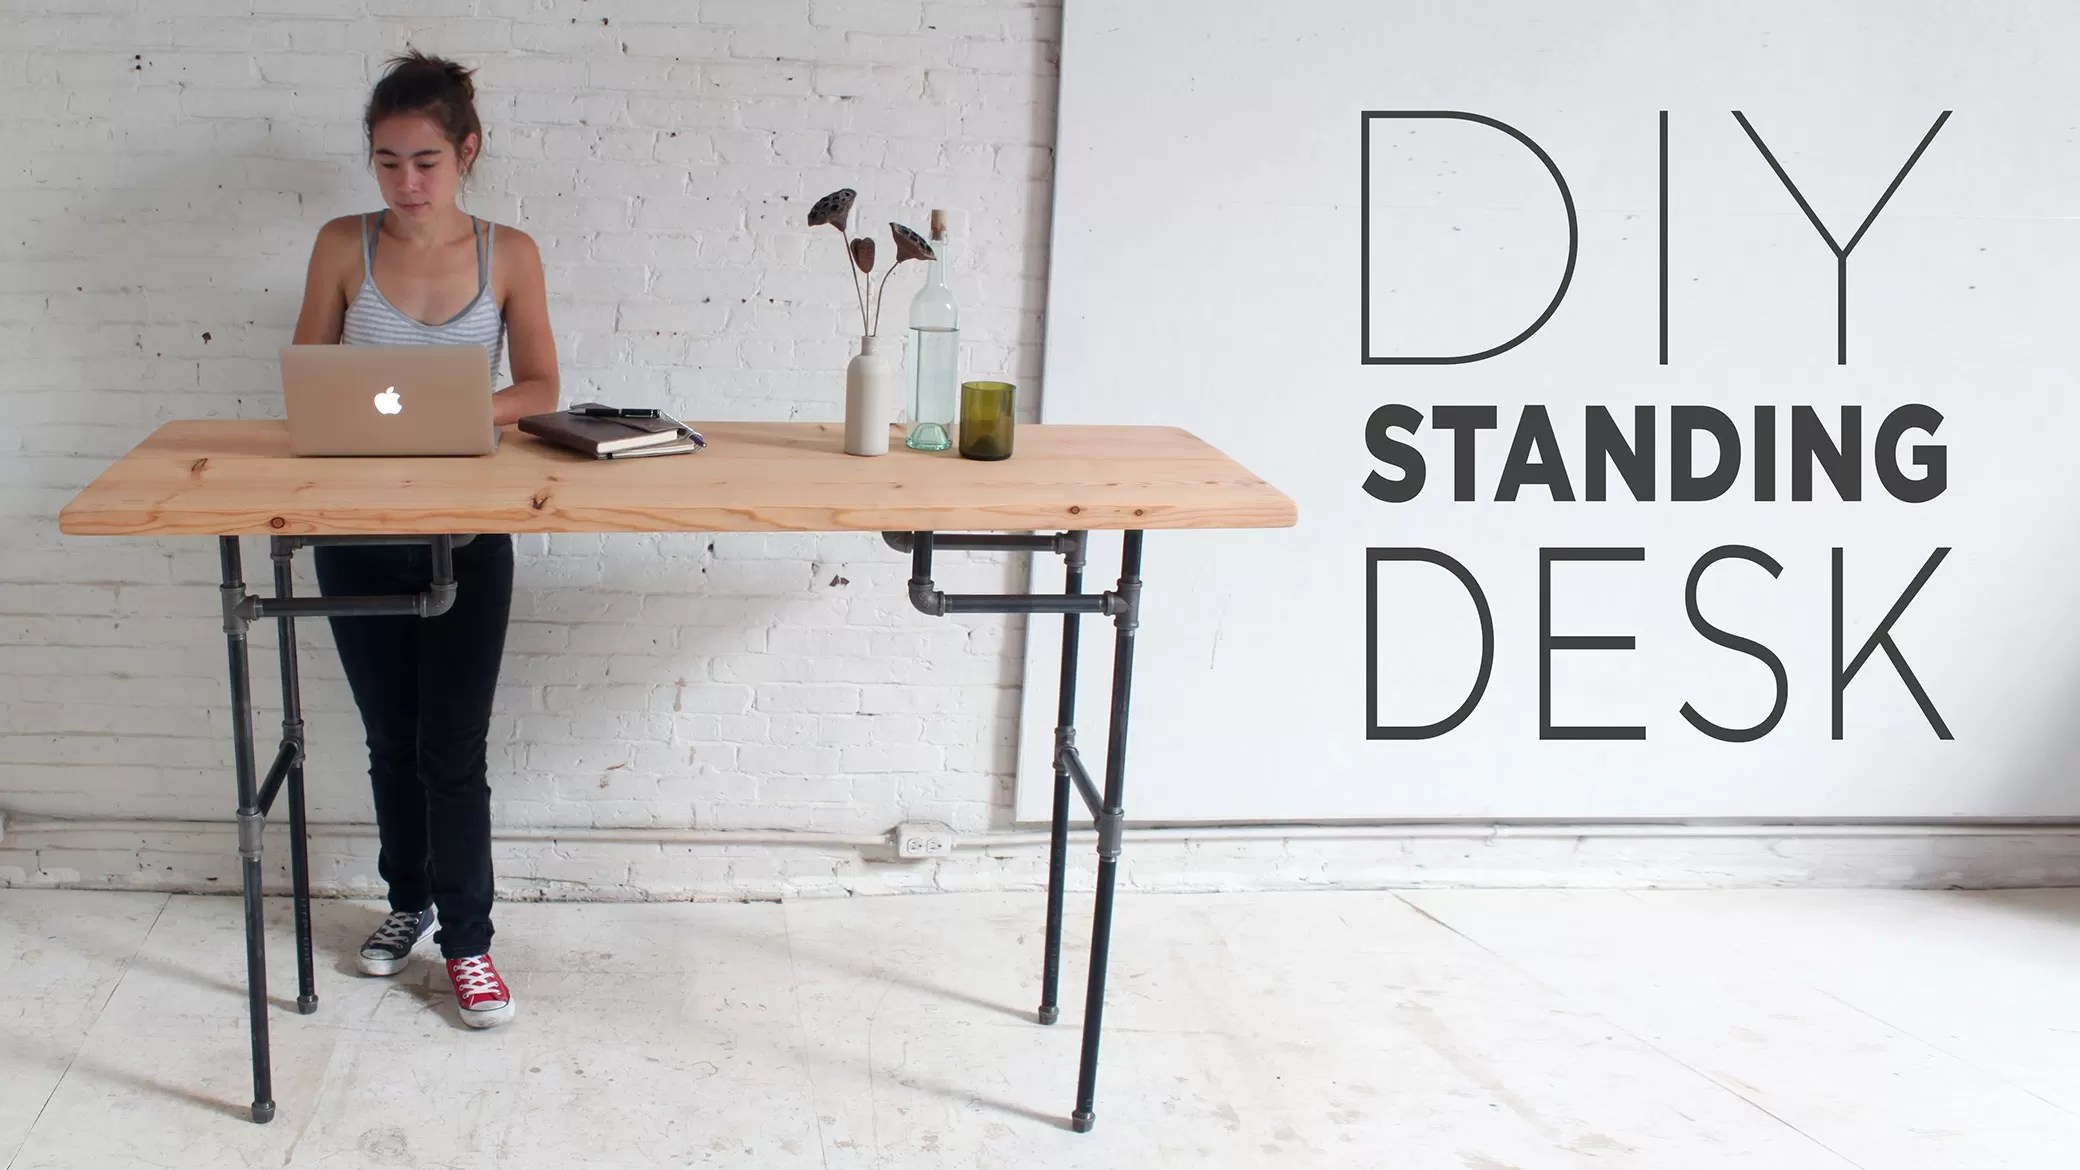 Diy Desktop Standing Desk 21 Diy Standing Or Stand Up Desk Ideas Guide Patterns